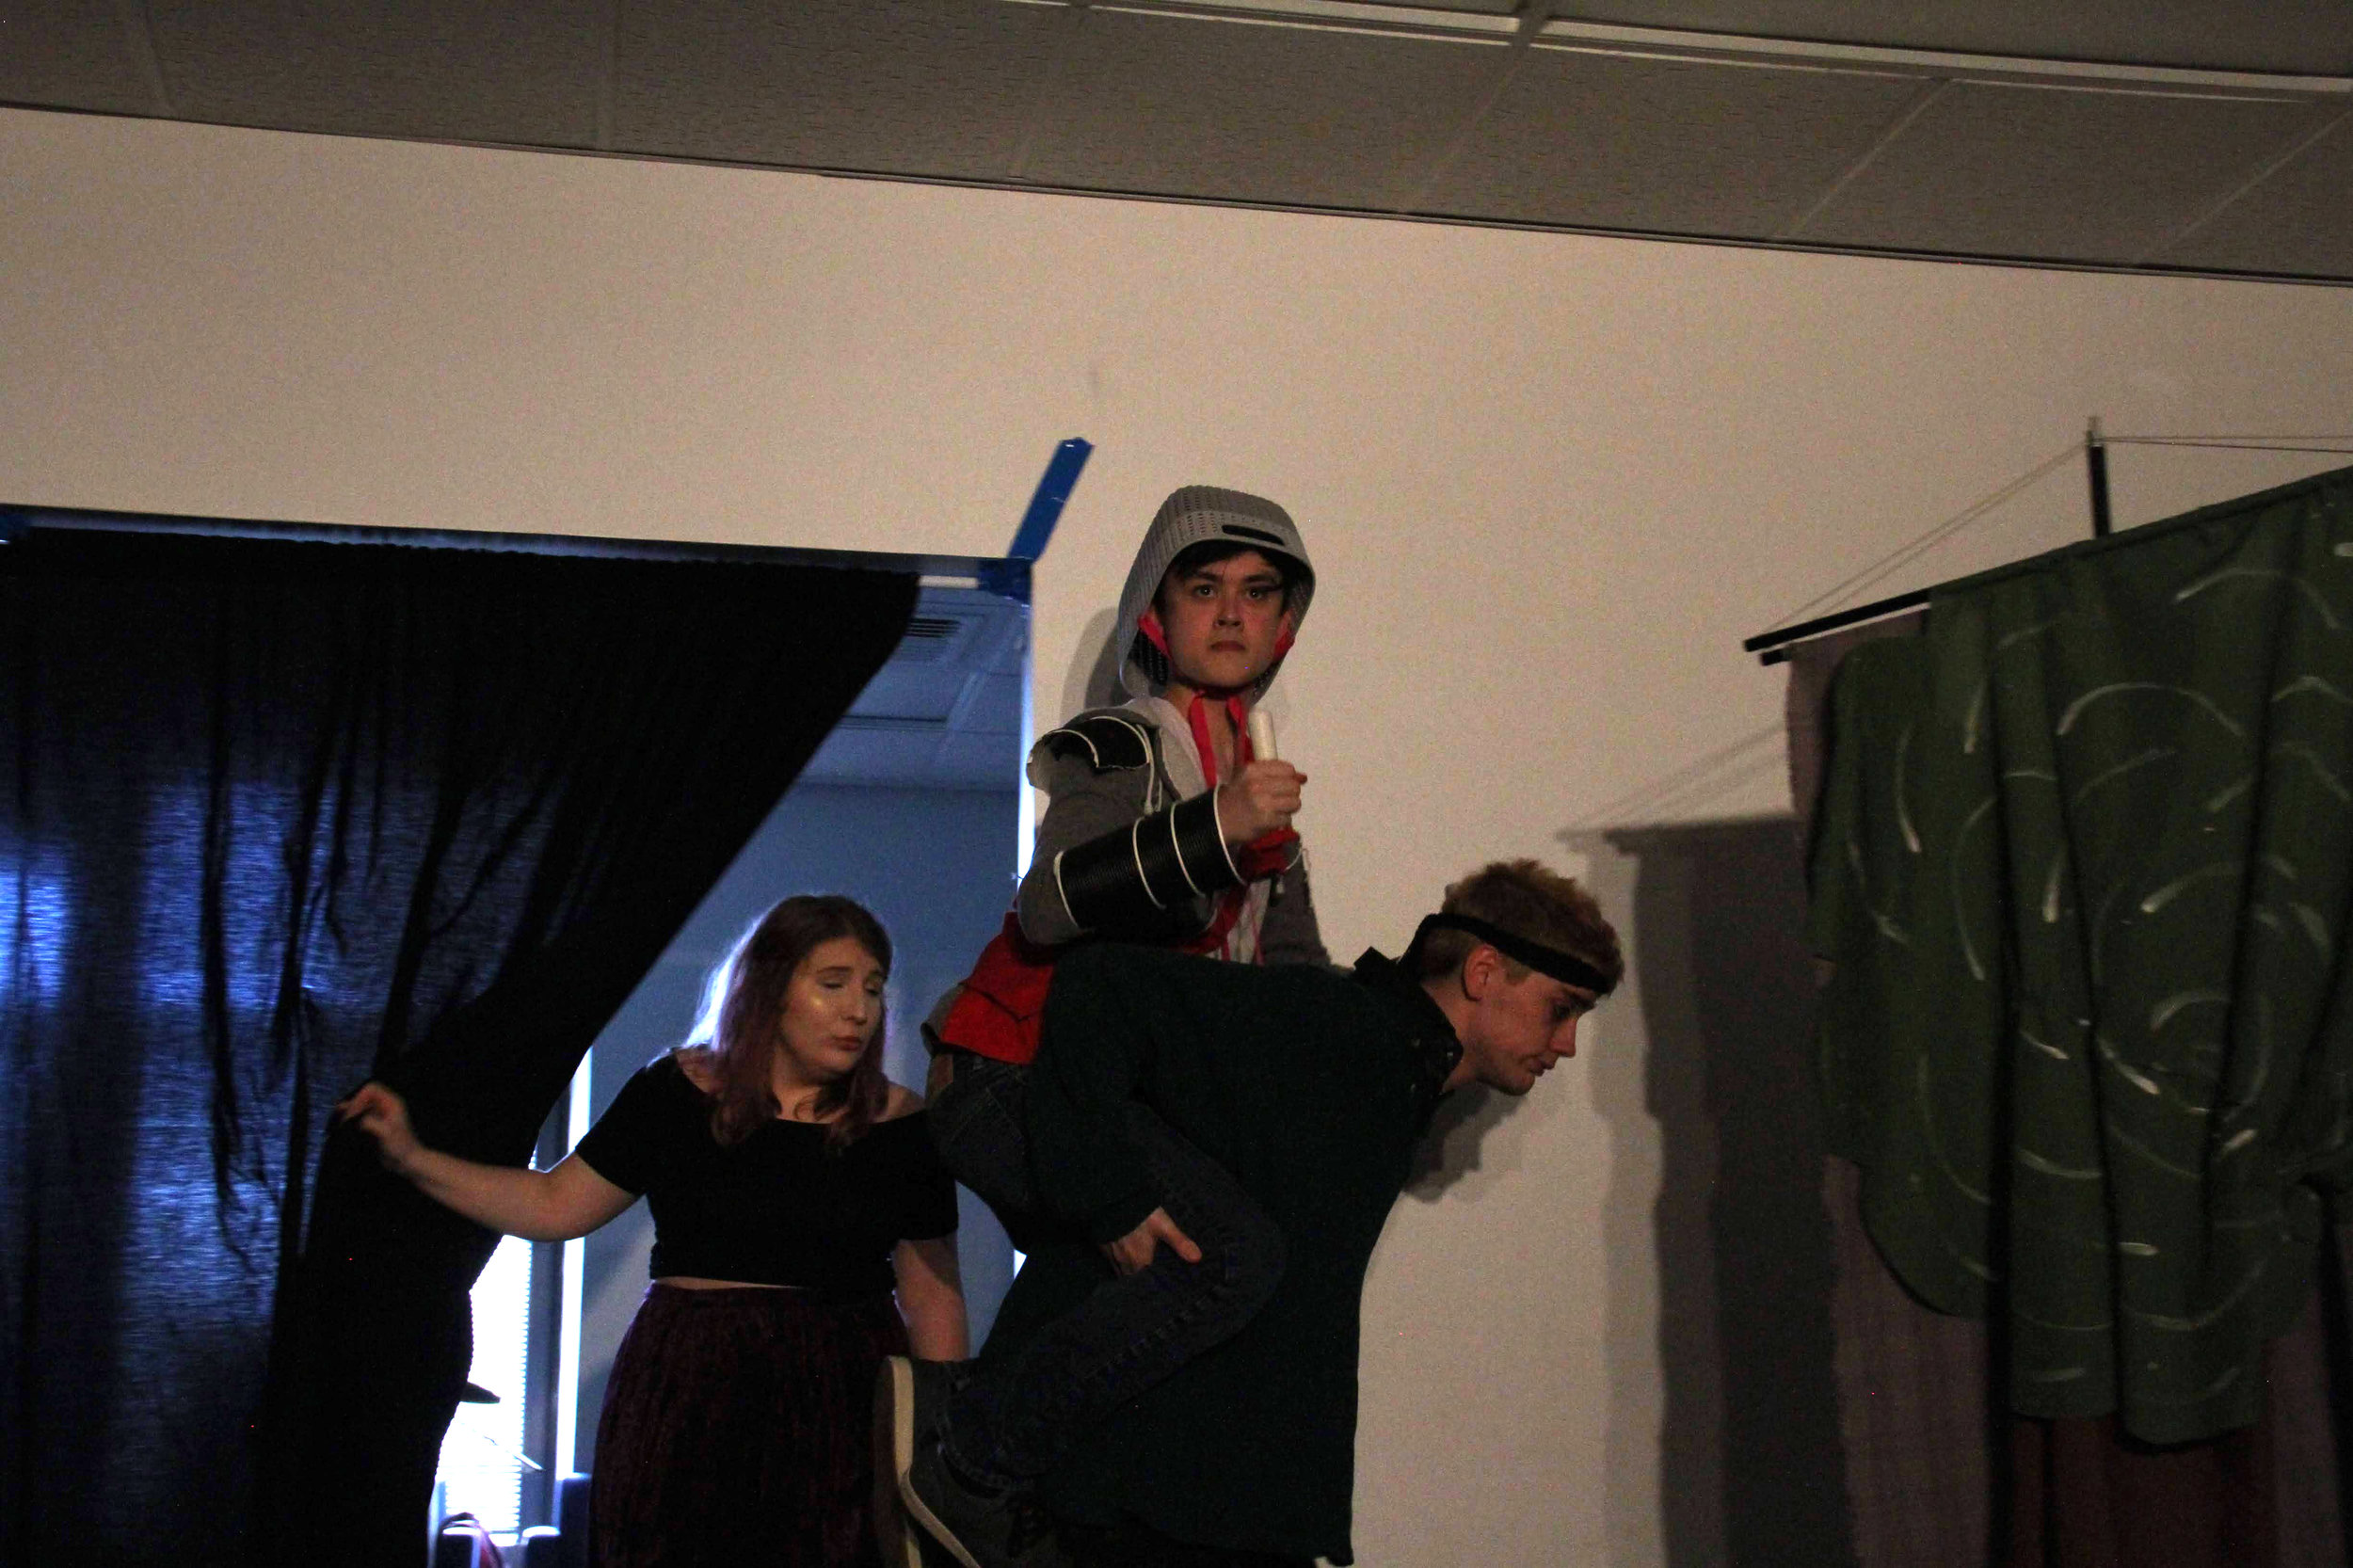 "(L to R) Sarah Smagala, Alex Grimm, and Jack Harding in ""Knight of the Burning Pestle"""